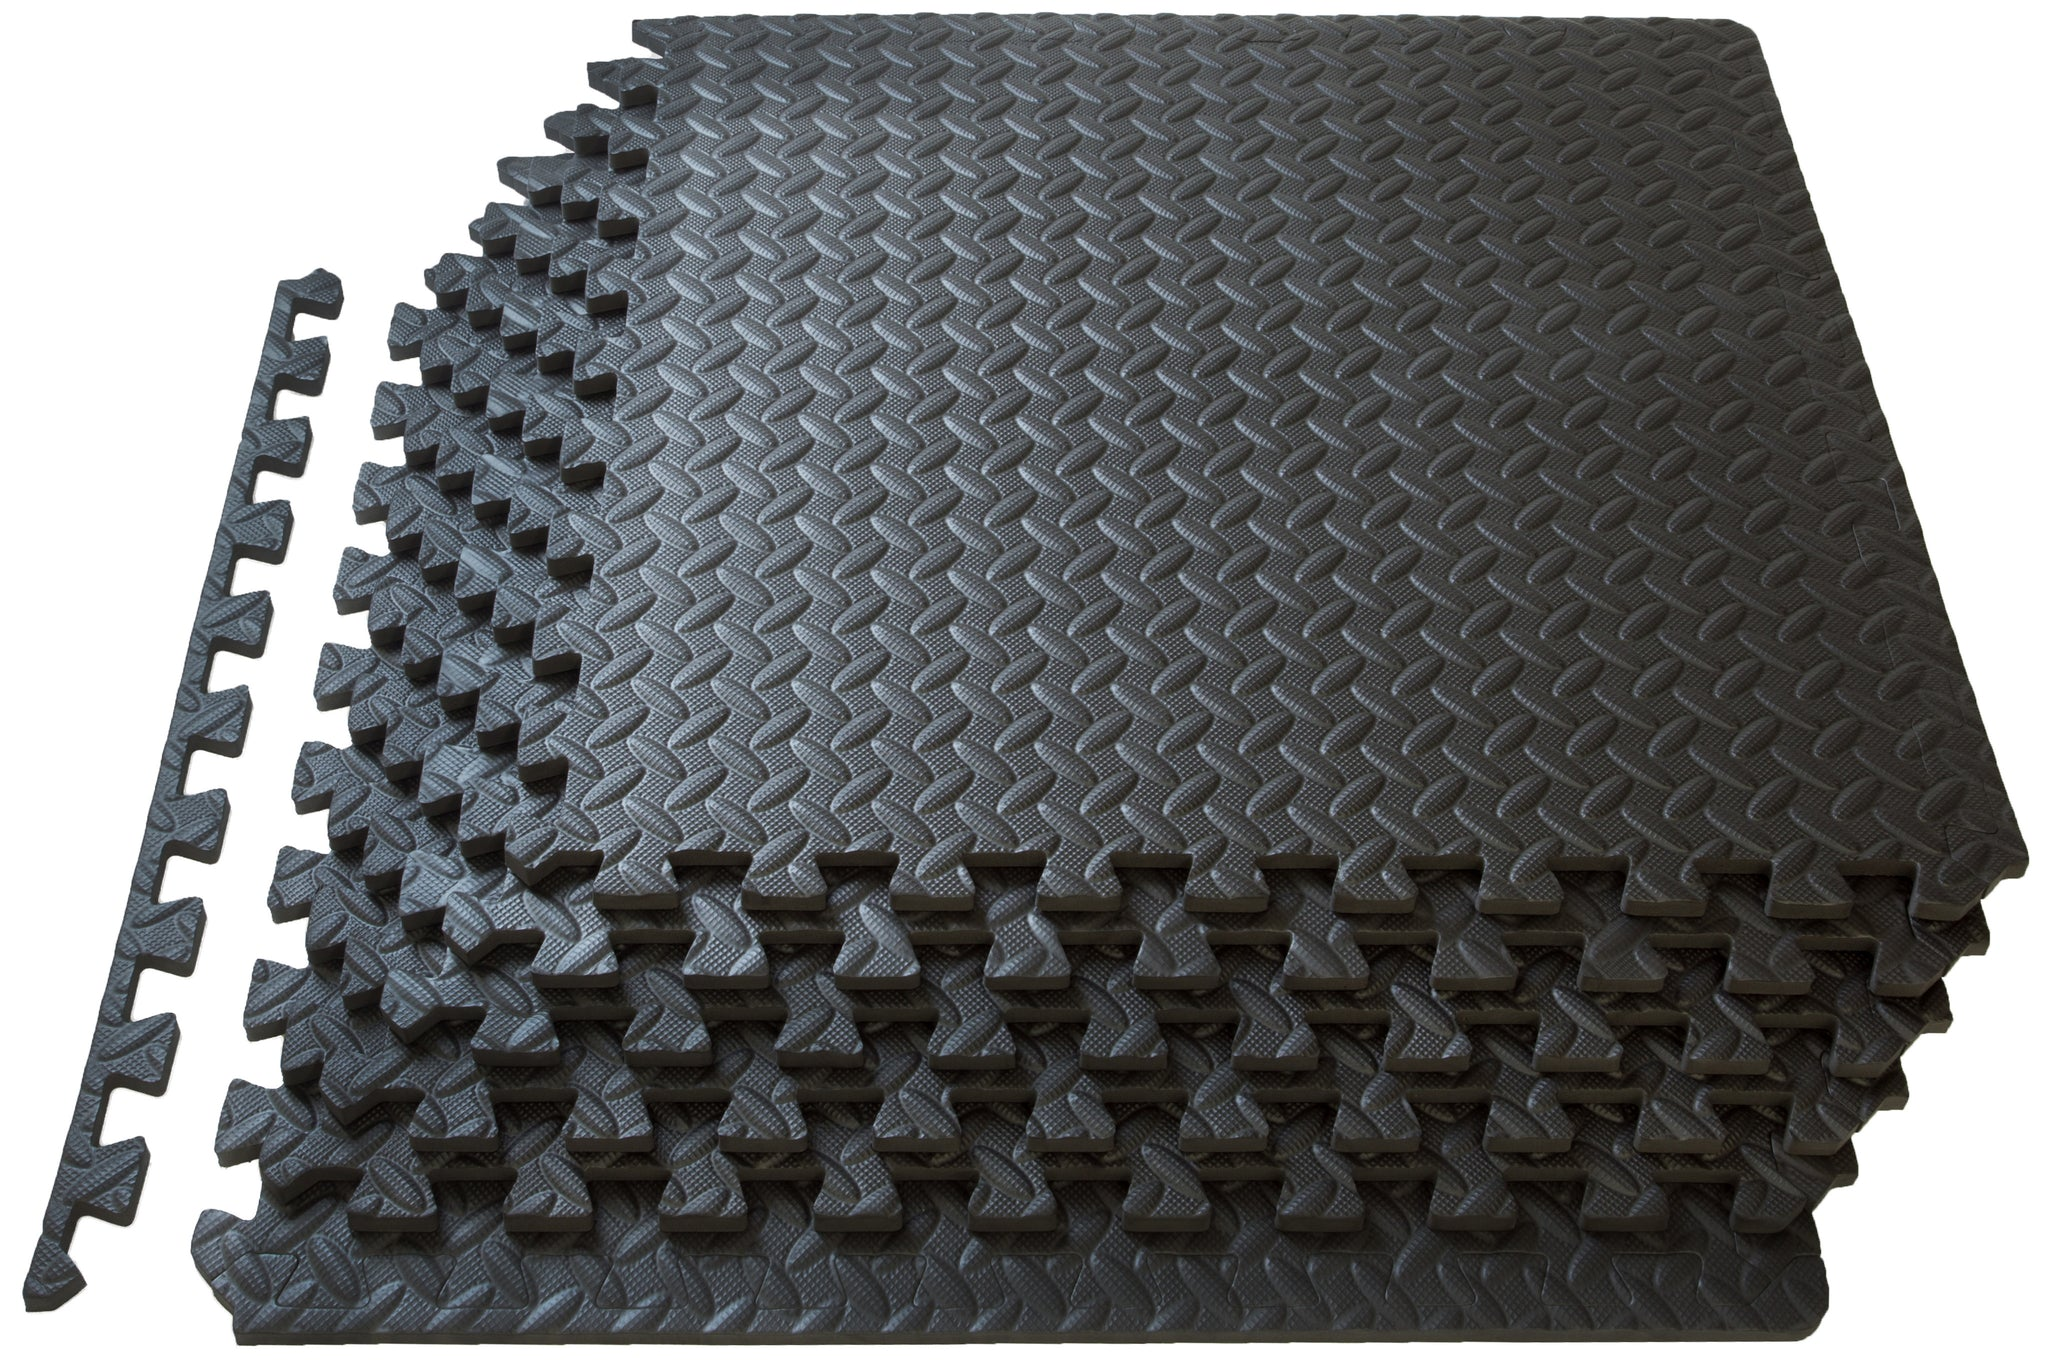 Black Exercise Puzzle Mat 1/2 inch